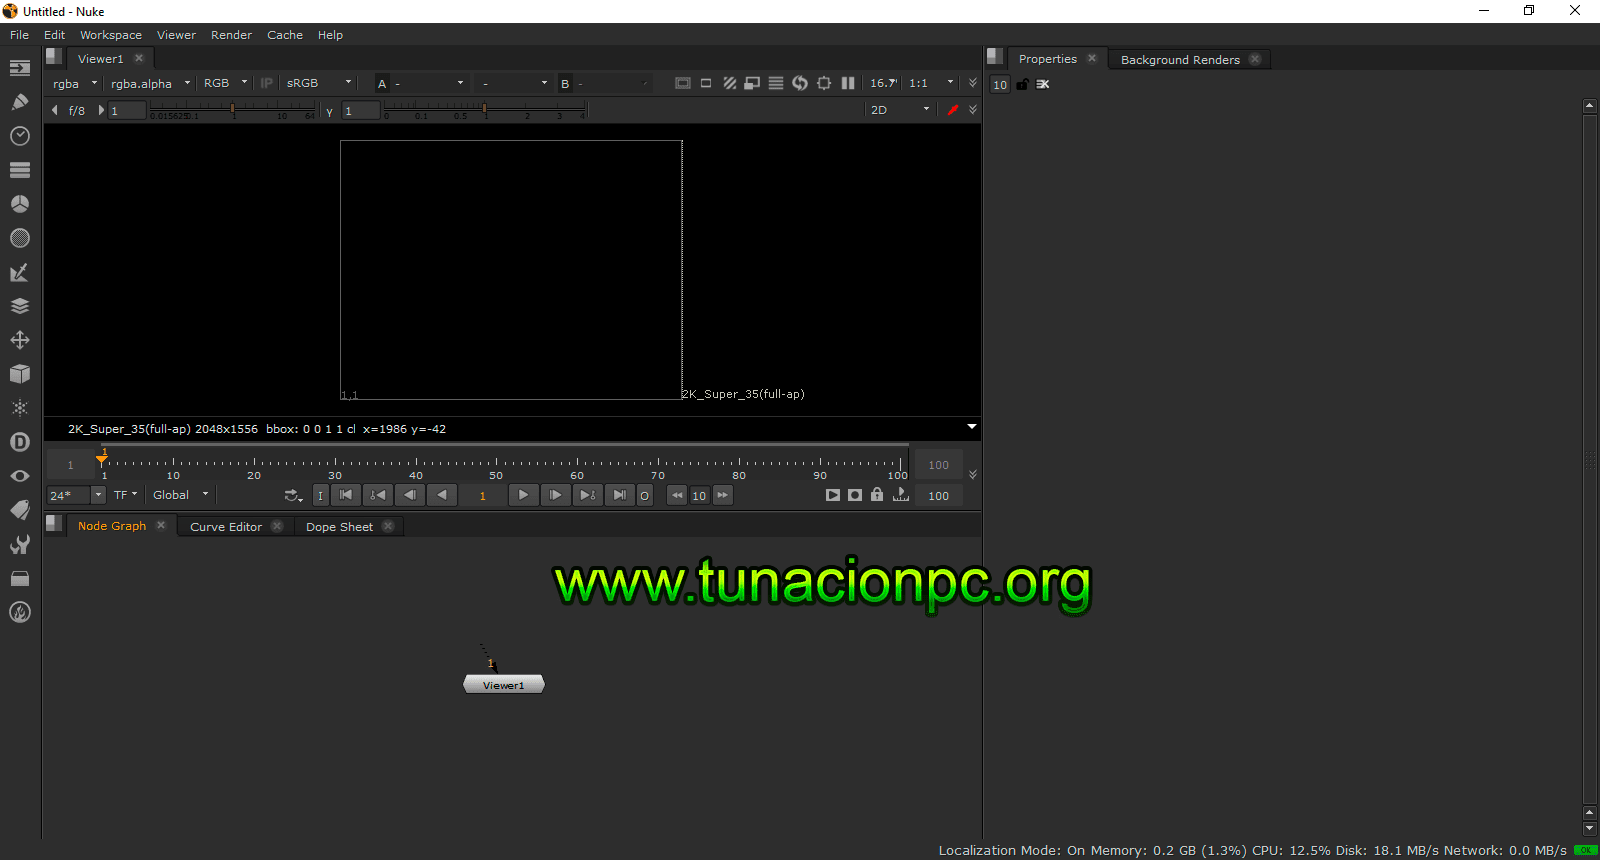 Descargar e Instalar y Activar The Foundry Nuke Studio